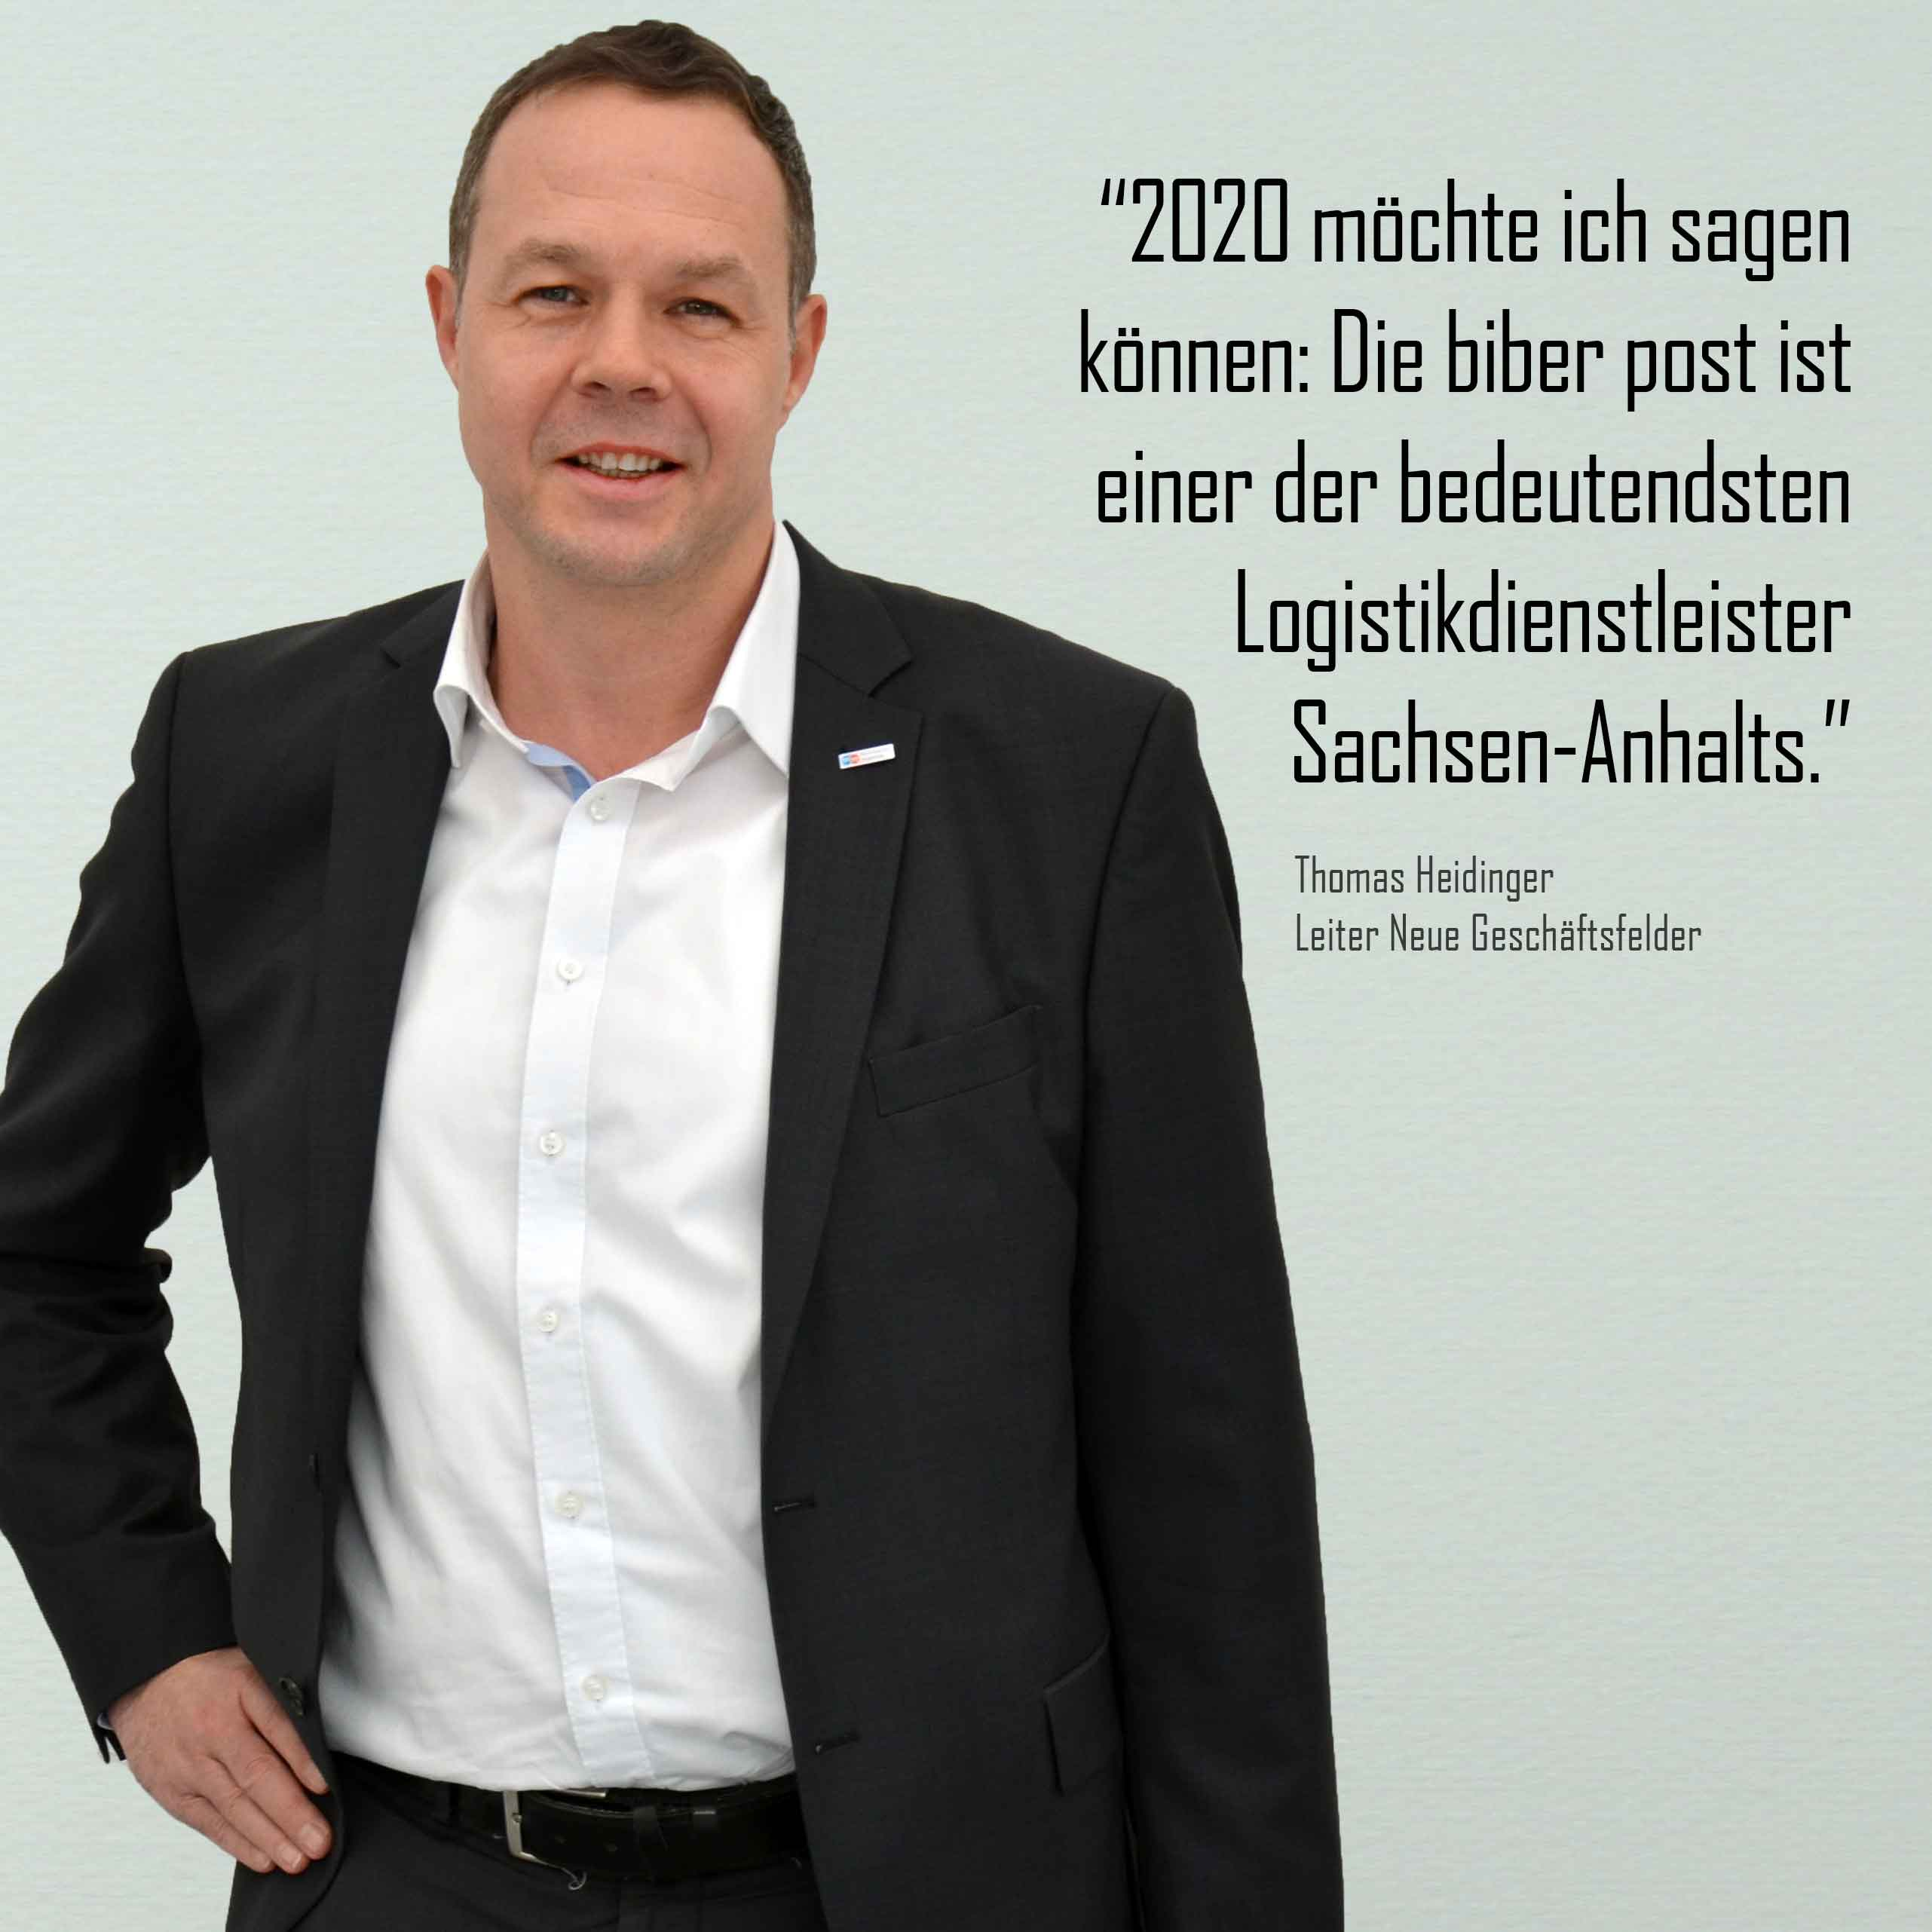 Thomas Heidinger - Statement zur biber post